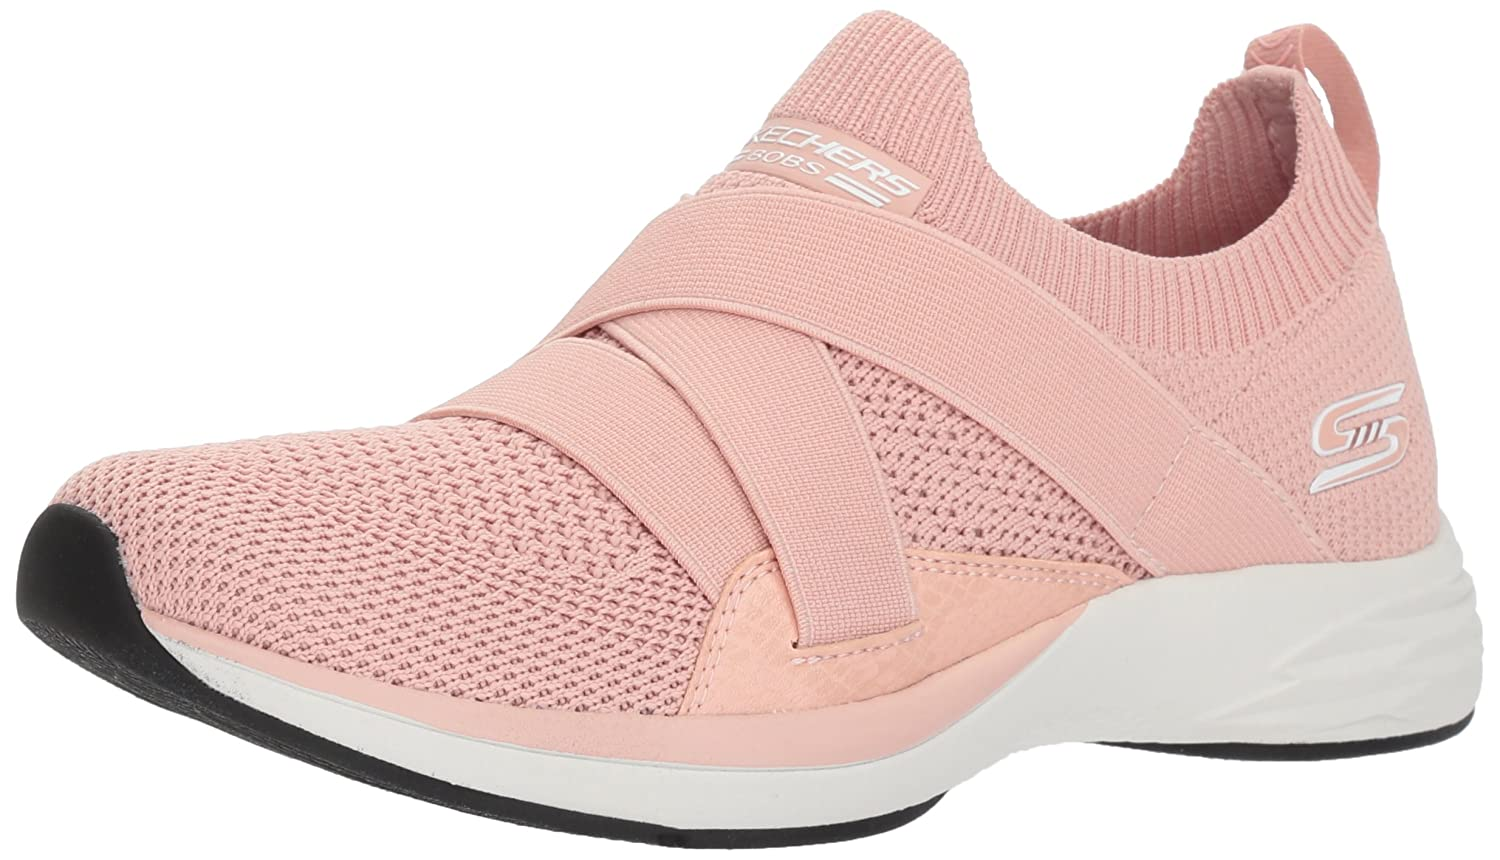 Skechers BOBS from Women's Bobs Clique Sneaker B077TFWPV1 9.5 B(M) US|Pnk